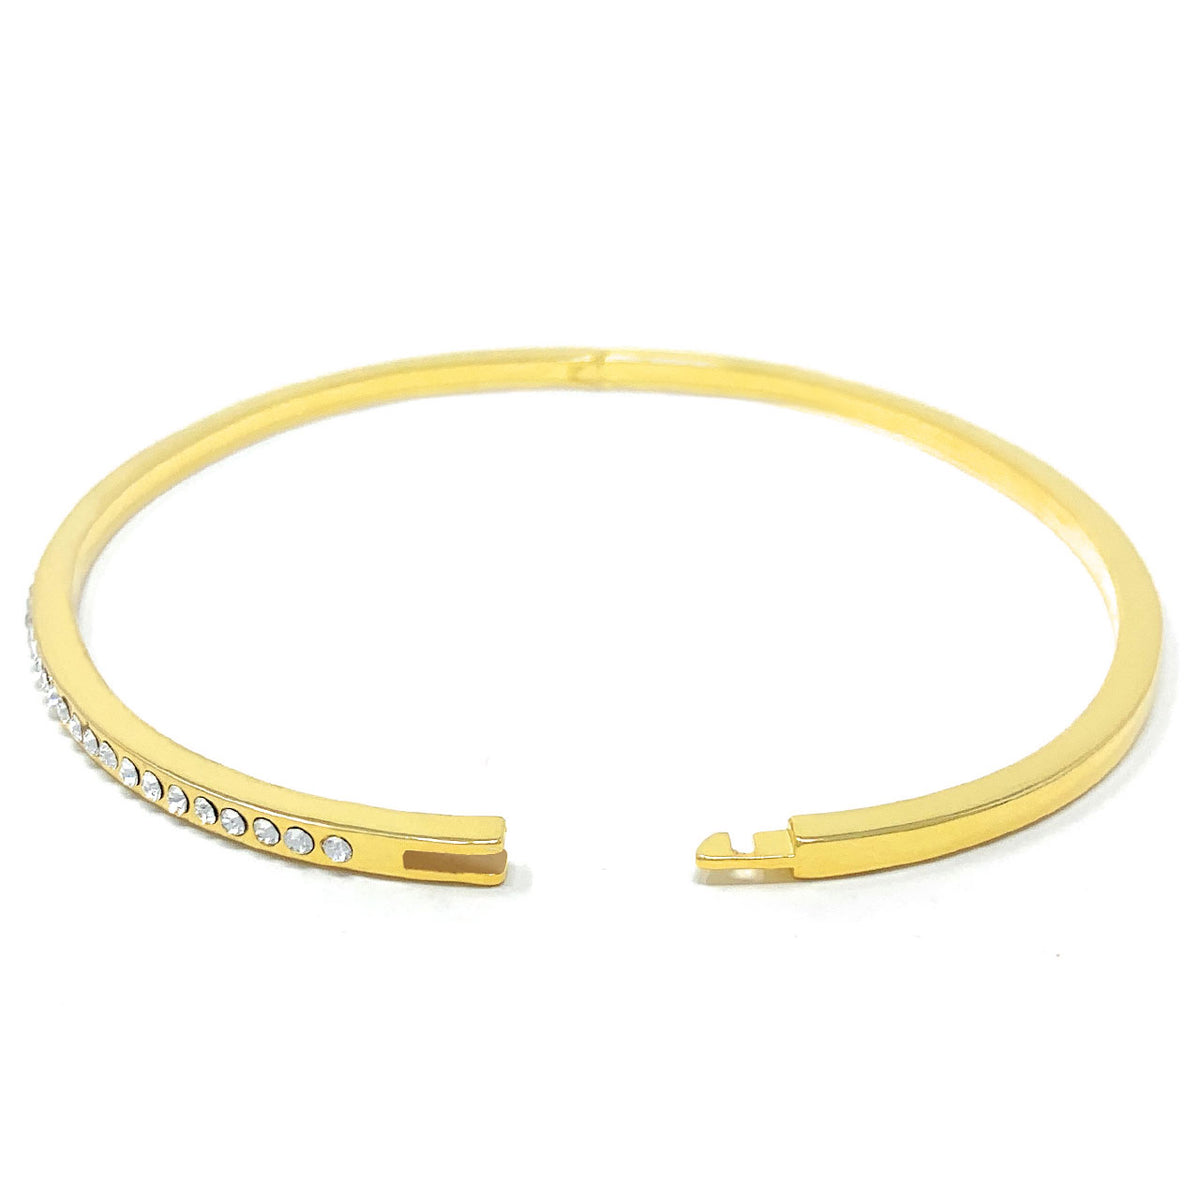 Amelia Pave Bangle Bracelet with White Clear Round Crystals from Swarovski Gold Plated - Ed Heart